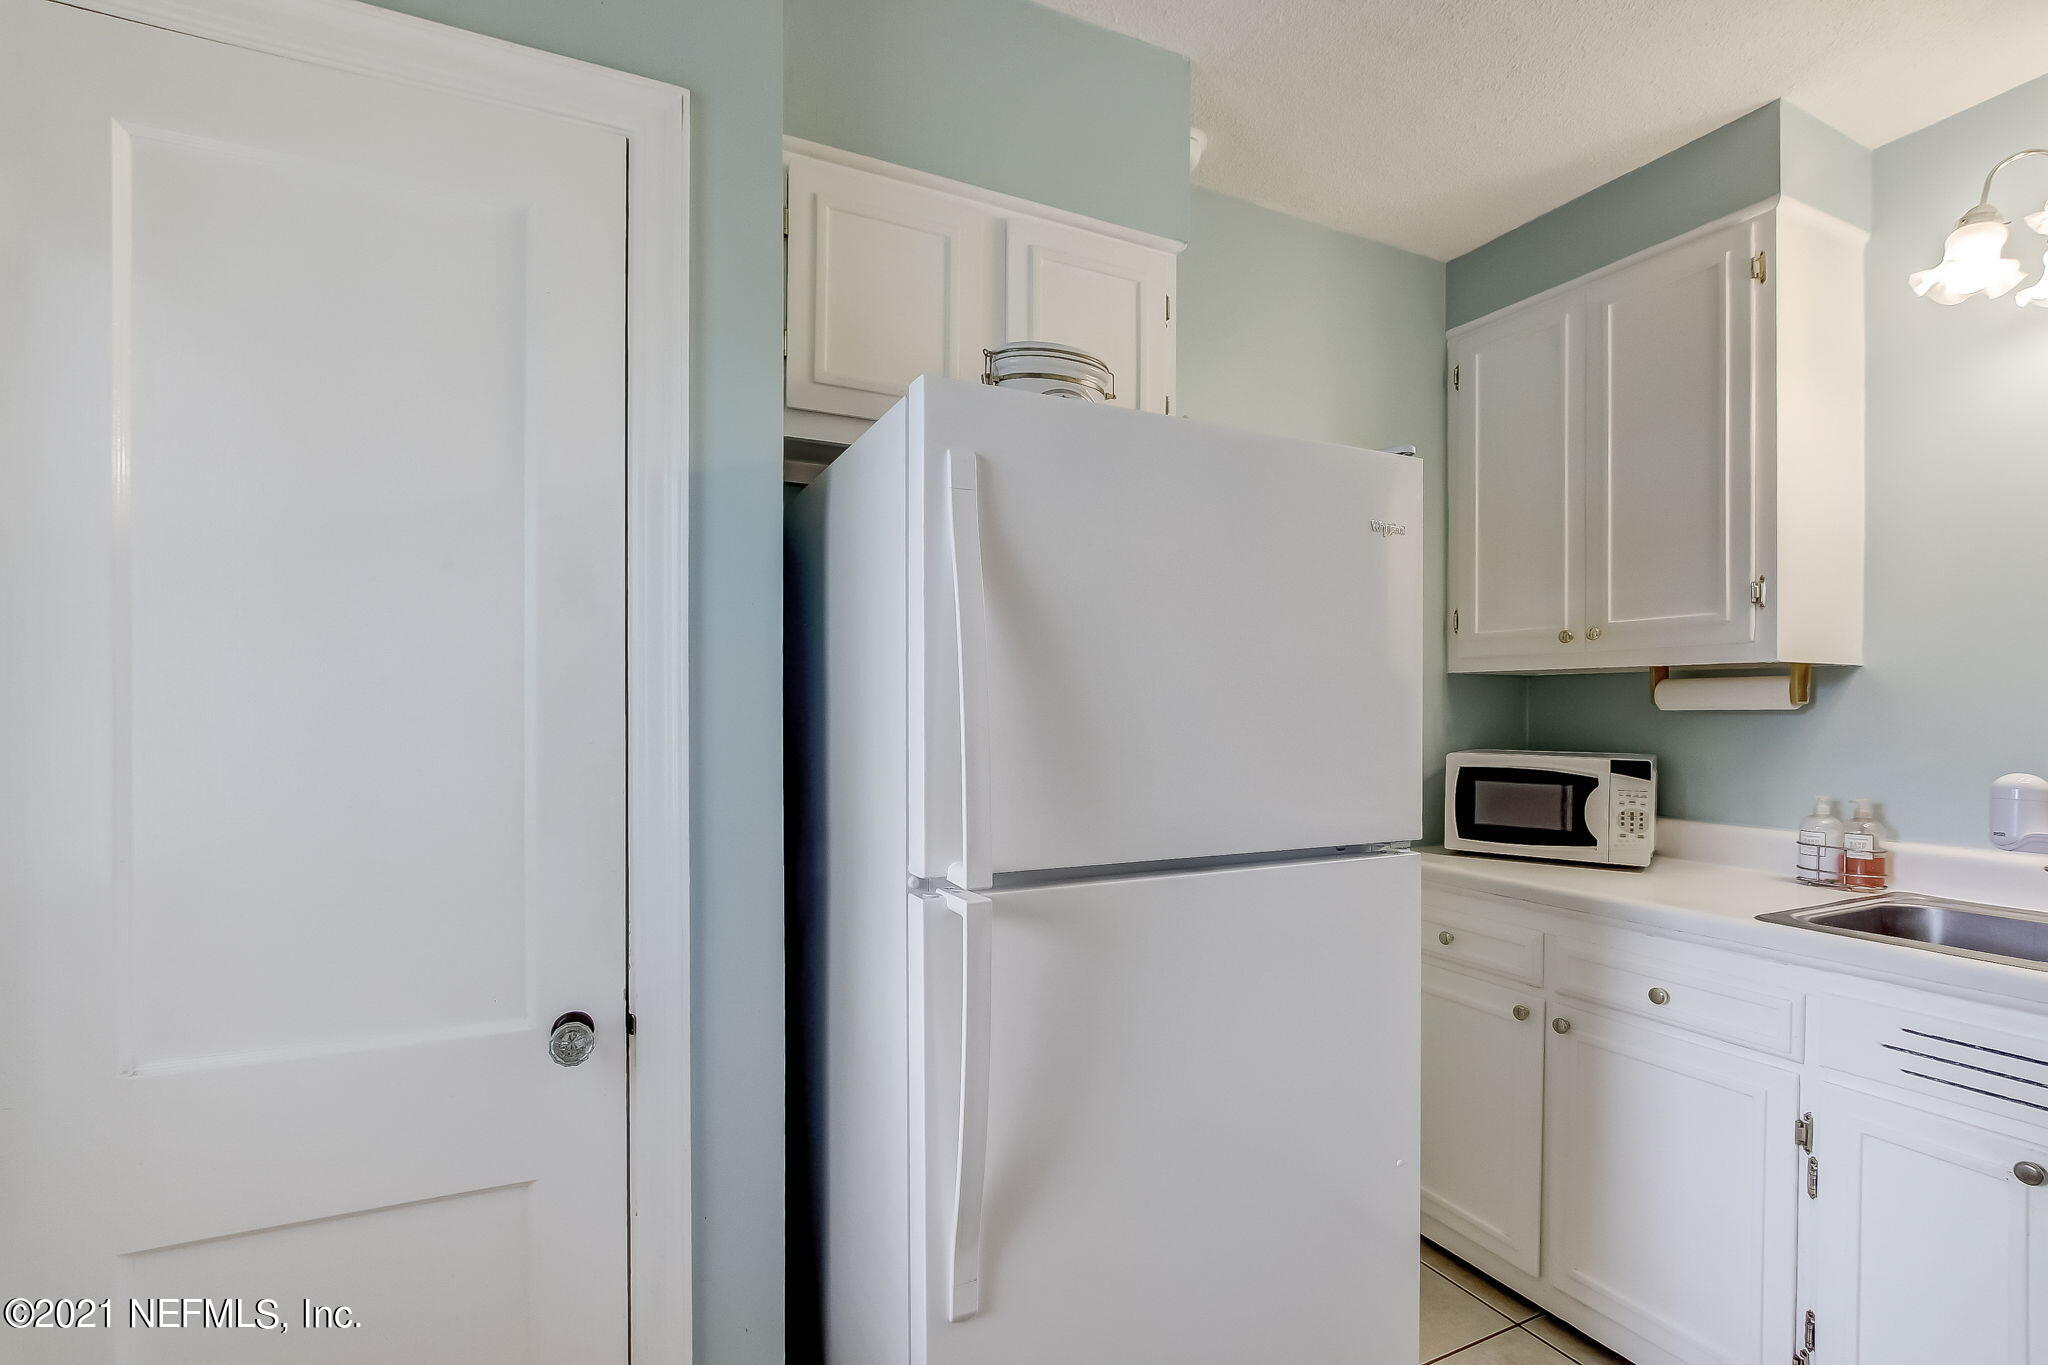 Kitchen View with new Whirlpool Refriger